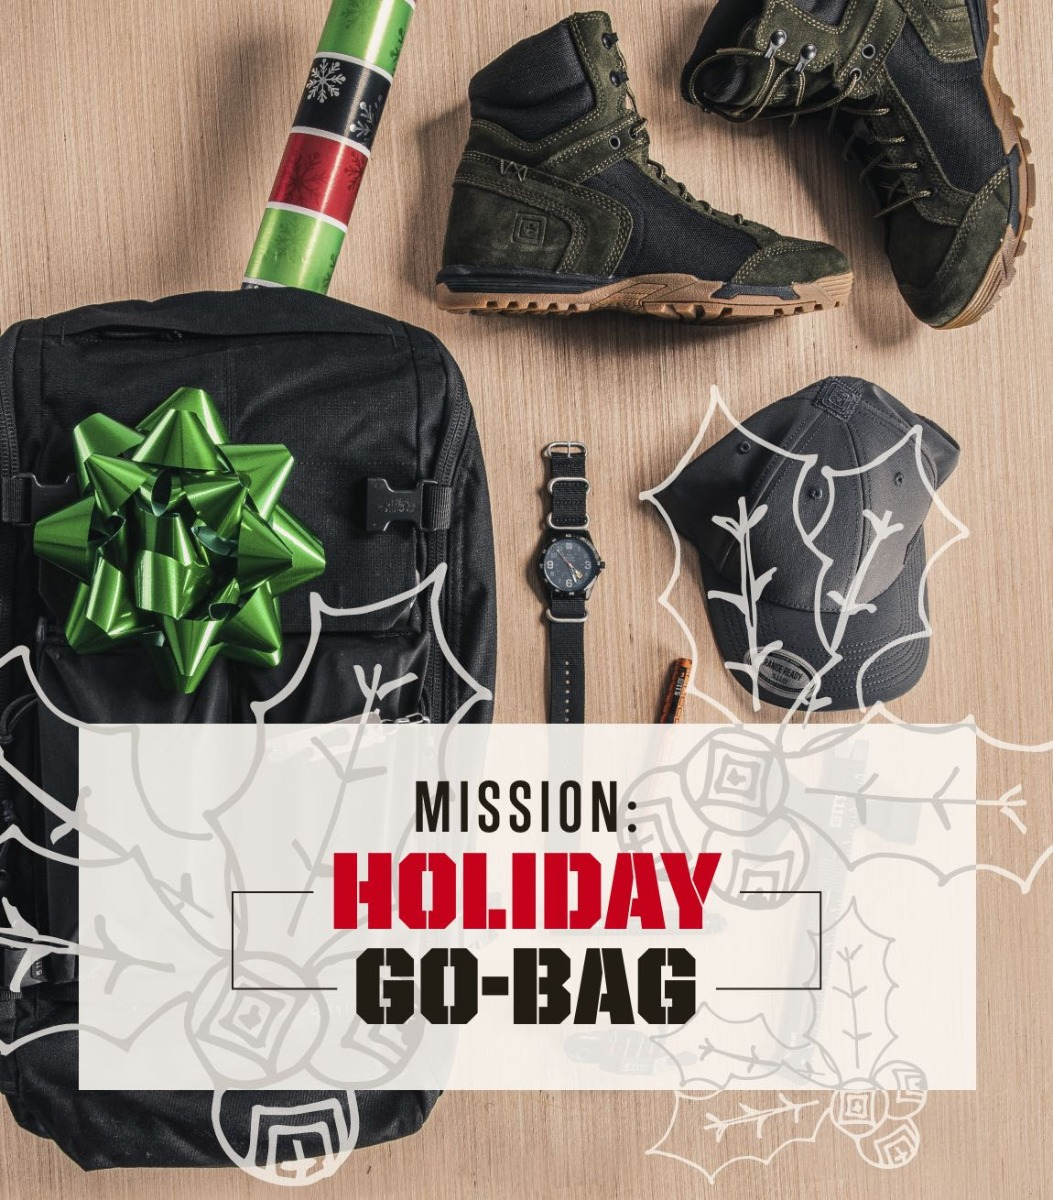 Mission Holiday Go-Bag